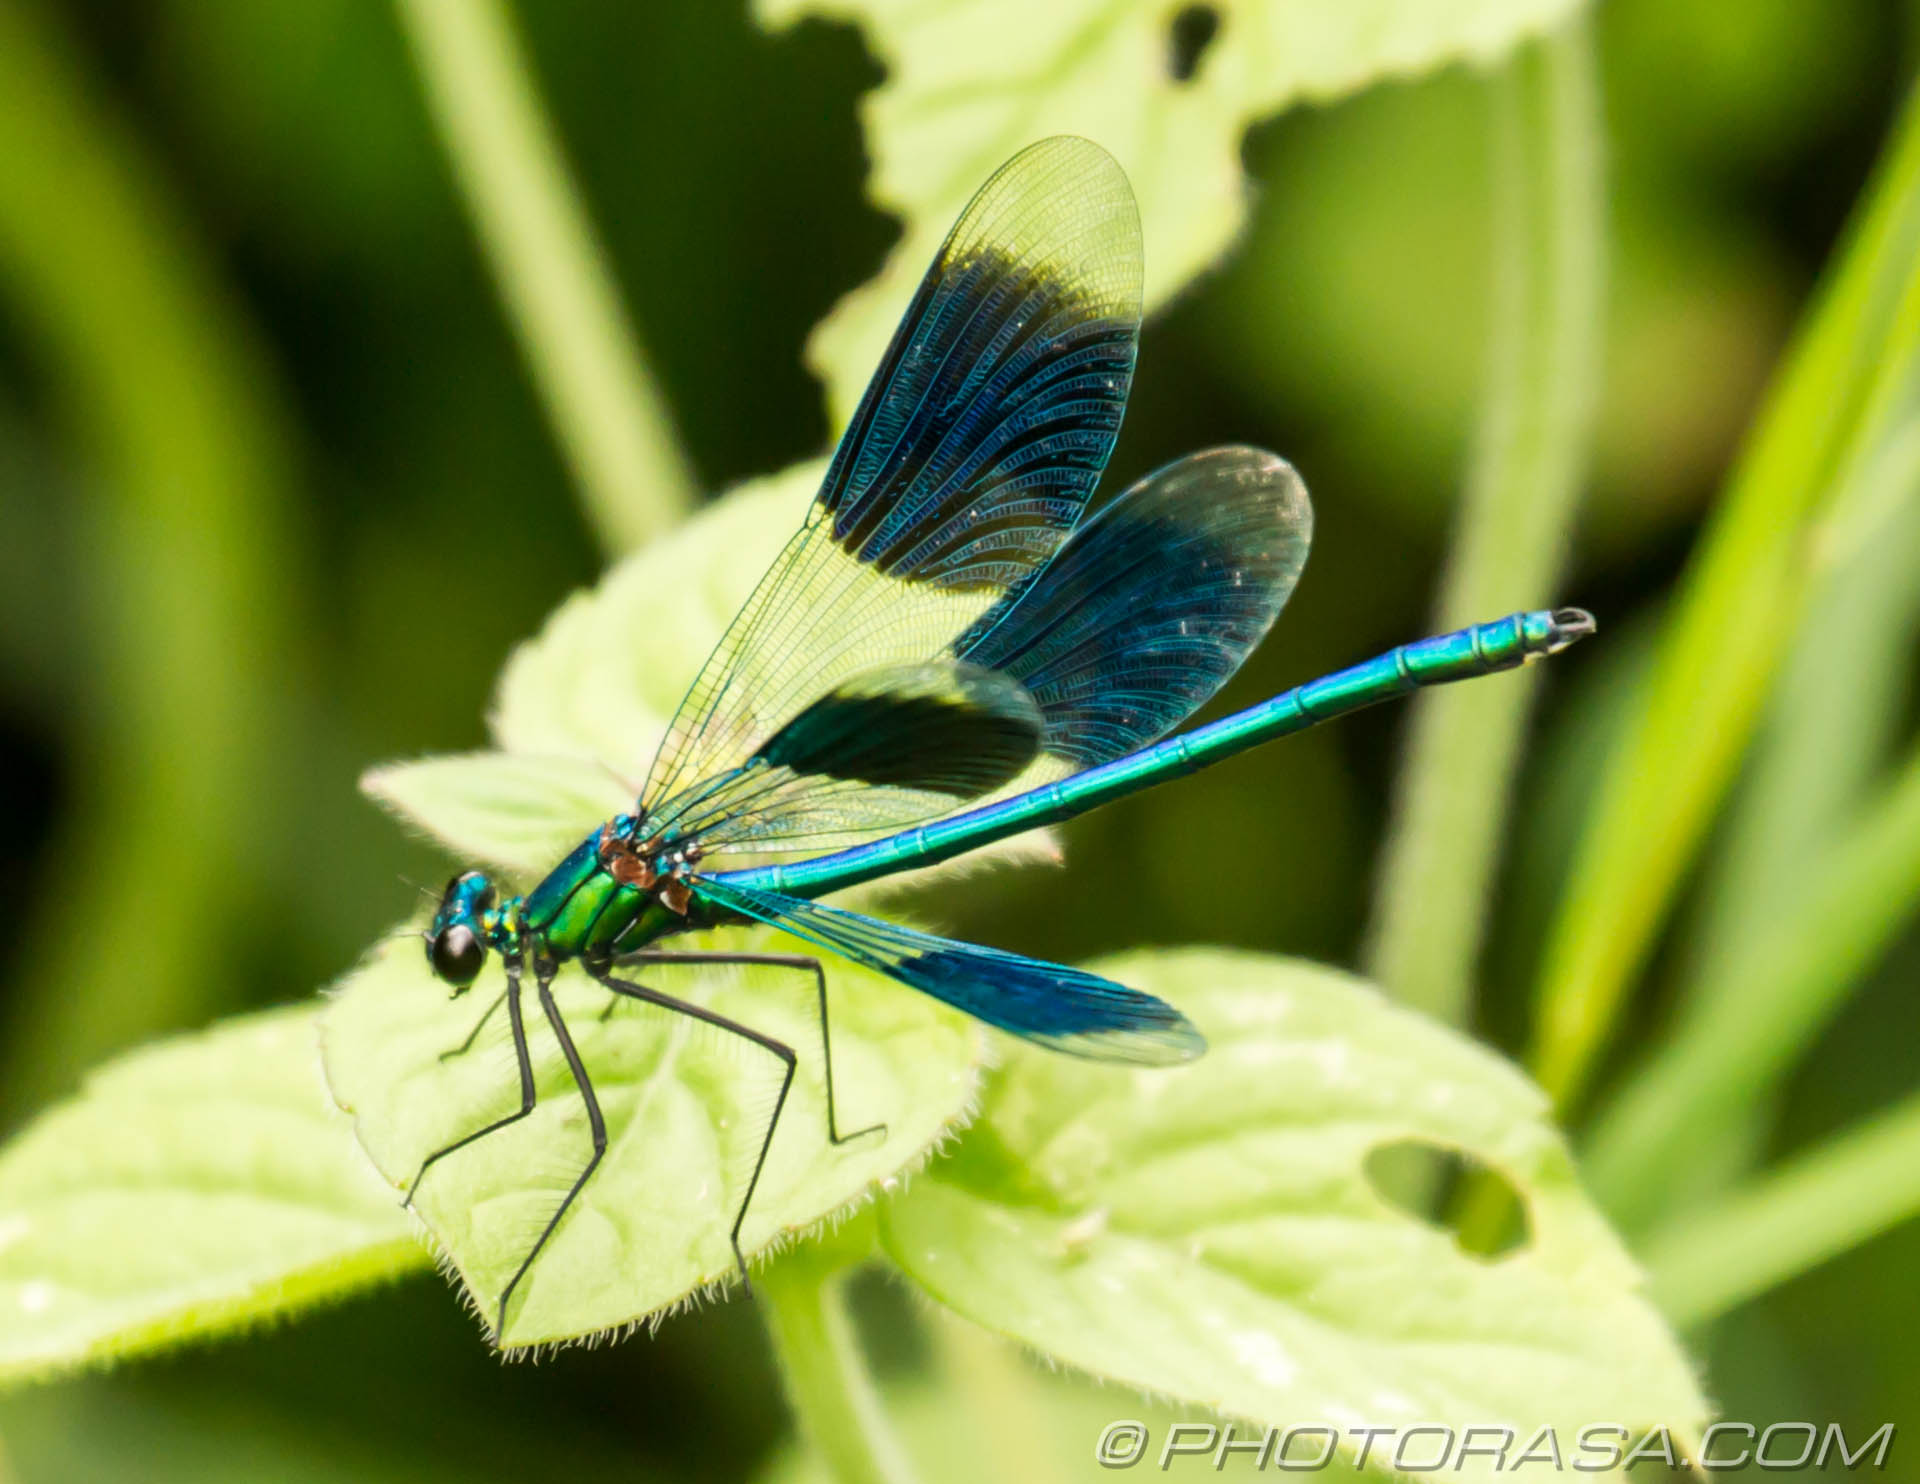 https://photorasa.com/damselflies/demoiselle-with-opened-wings/